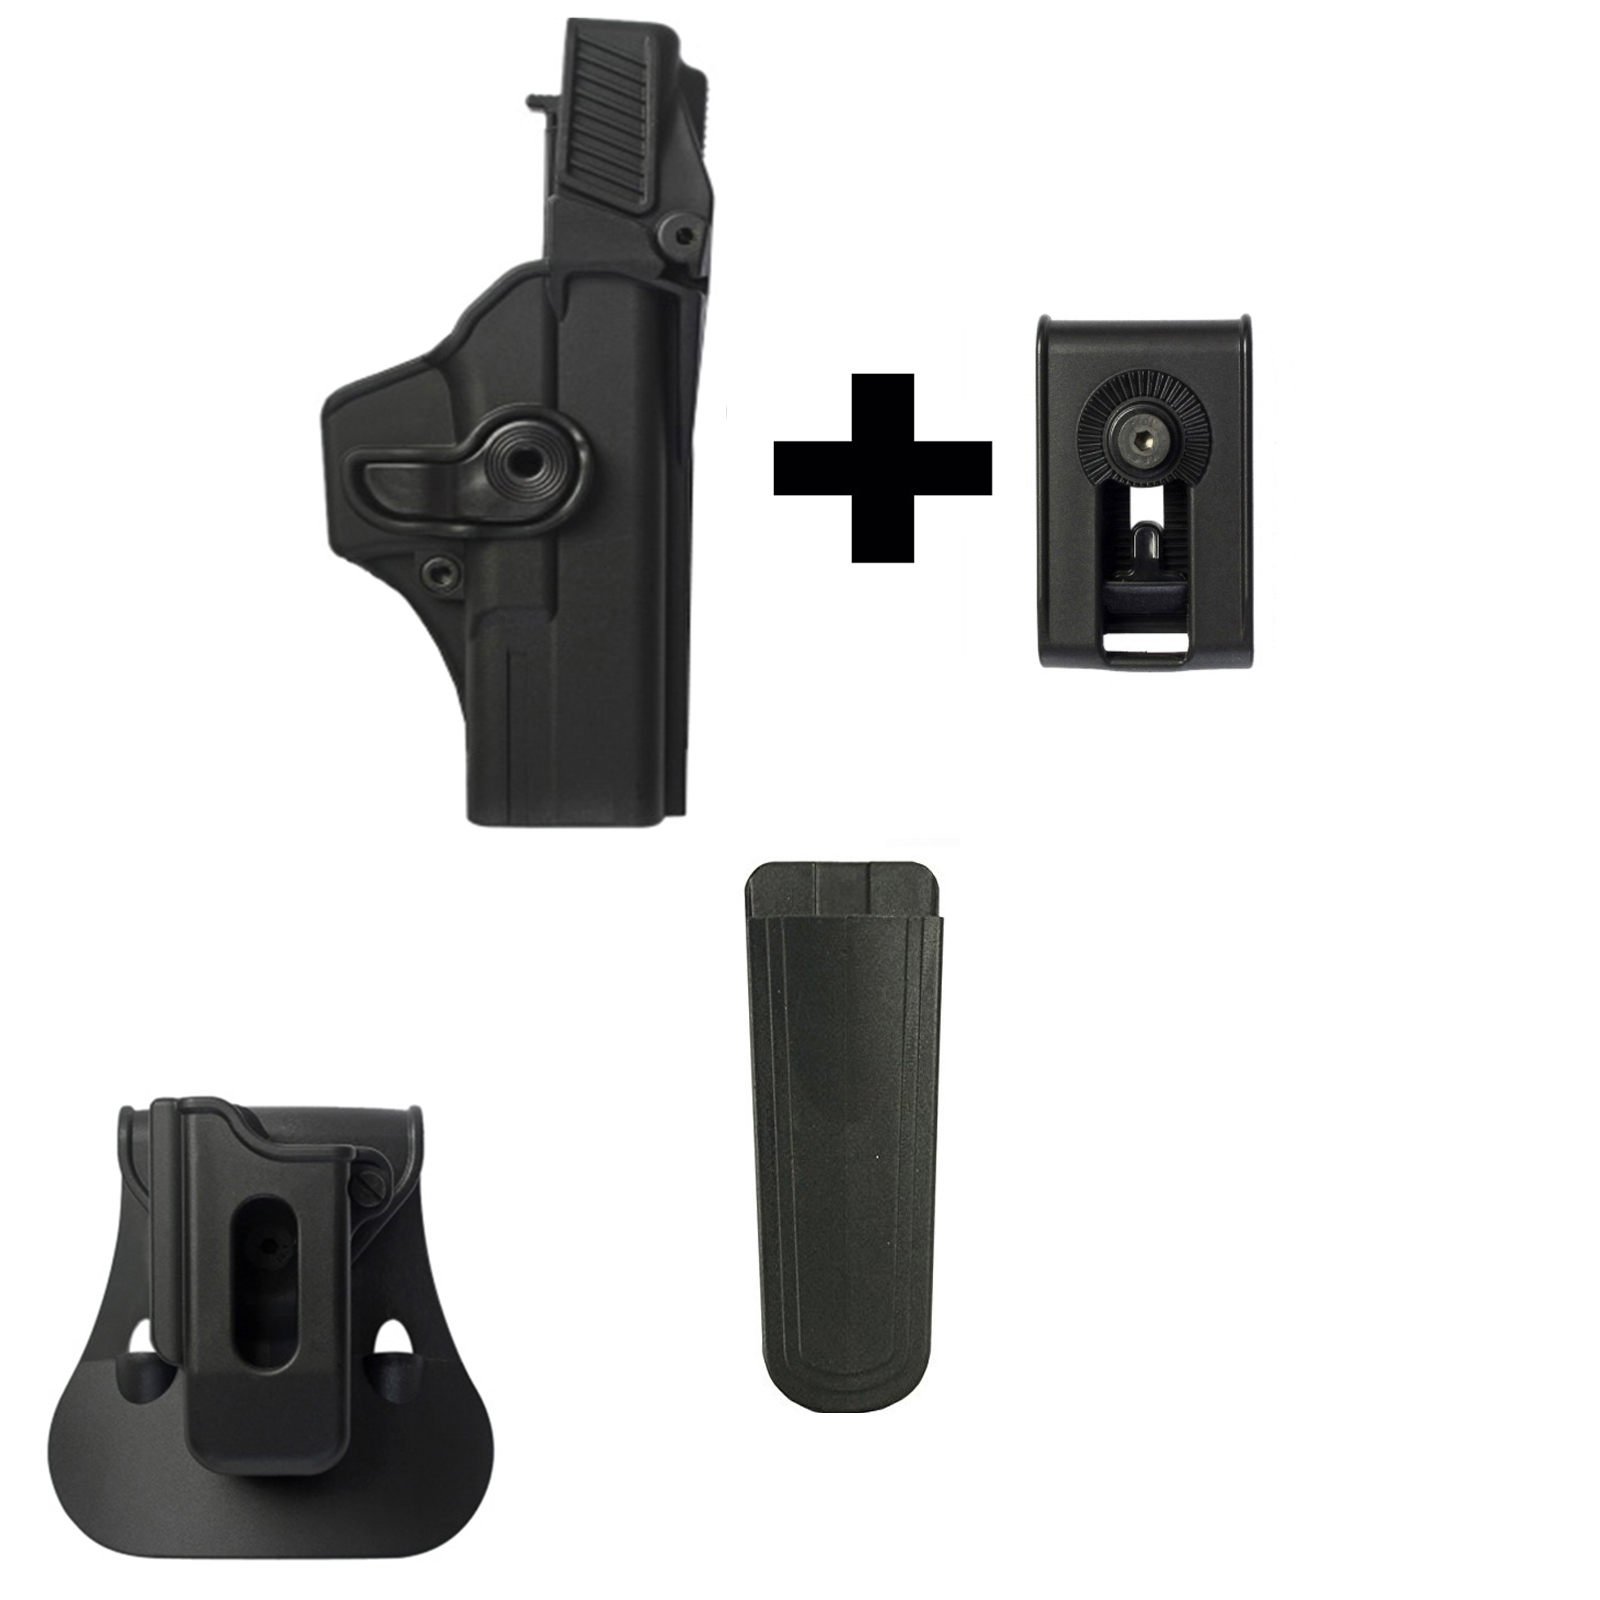 IMI Defense ZSP08 Single Mag Pouch & Paddle + Z1410 Level 3 360� Rotate Holster Glock 17 22 31 Gen 4, Black + Z2150 Belt... by